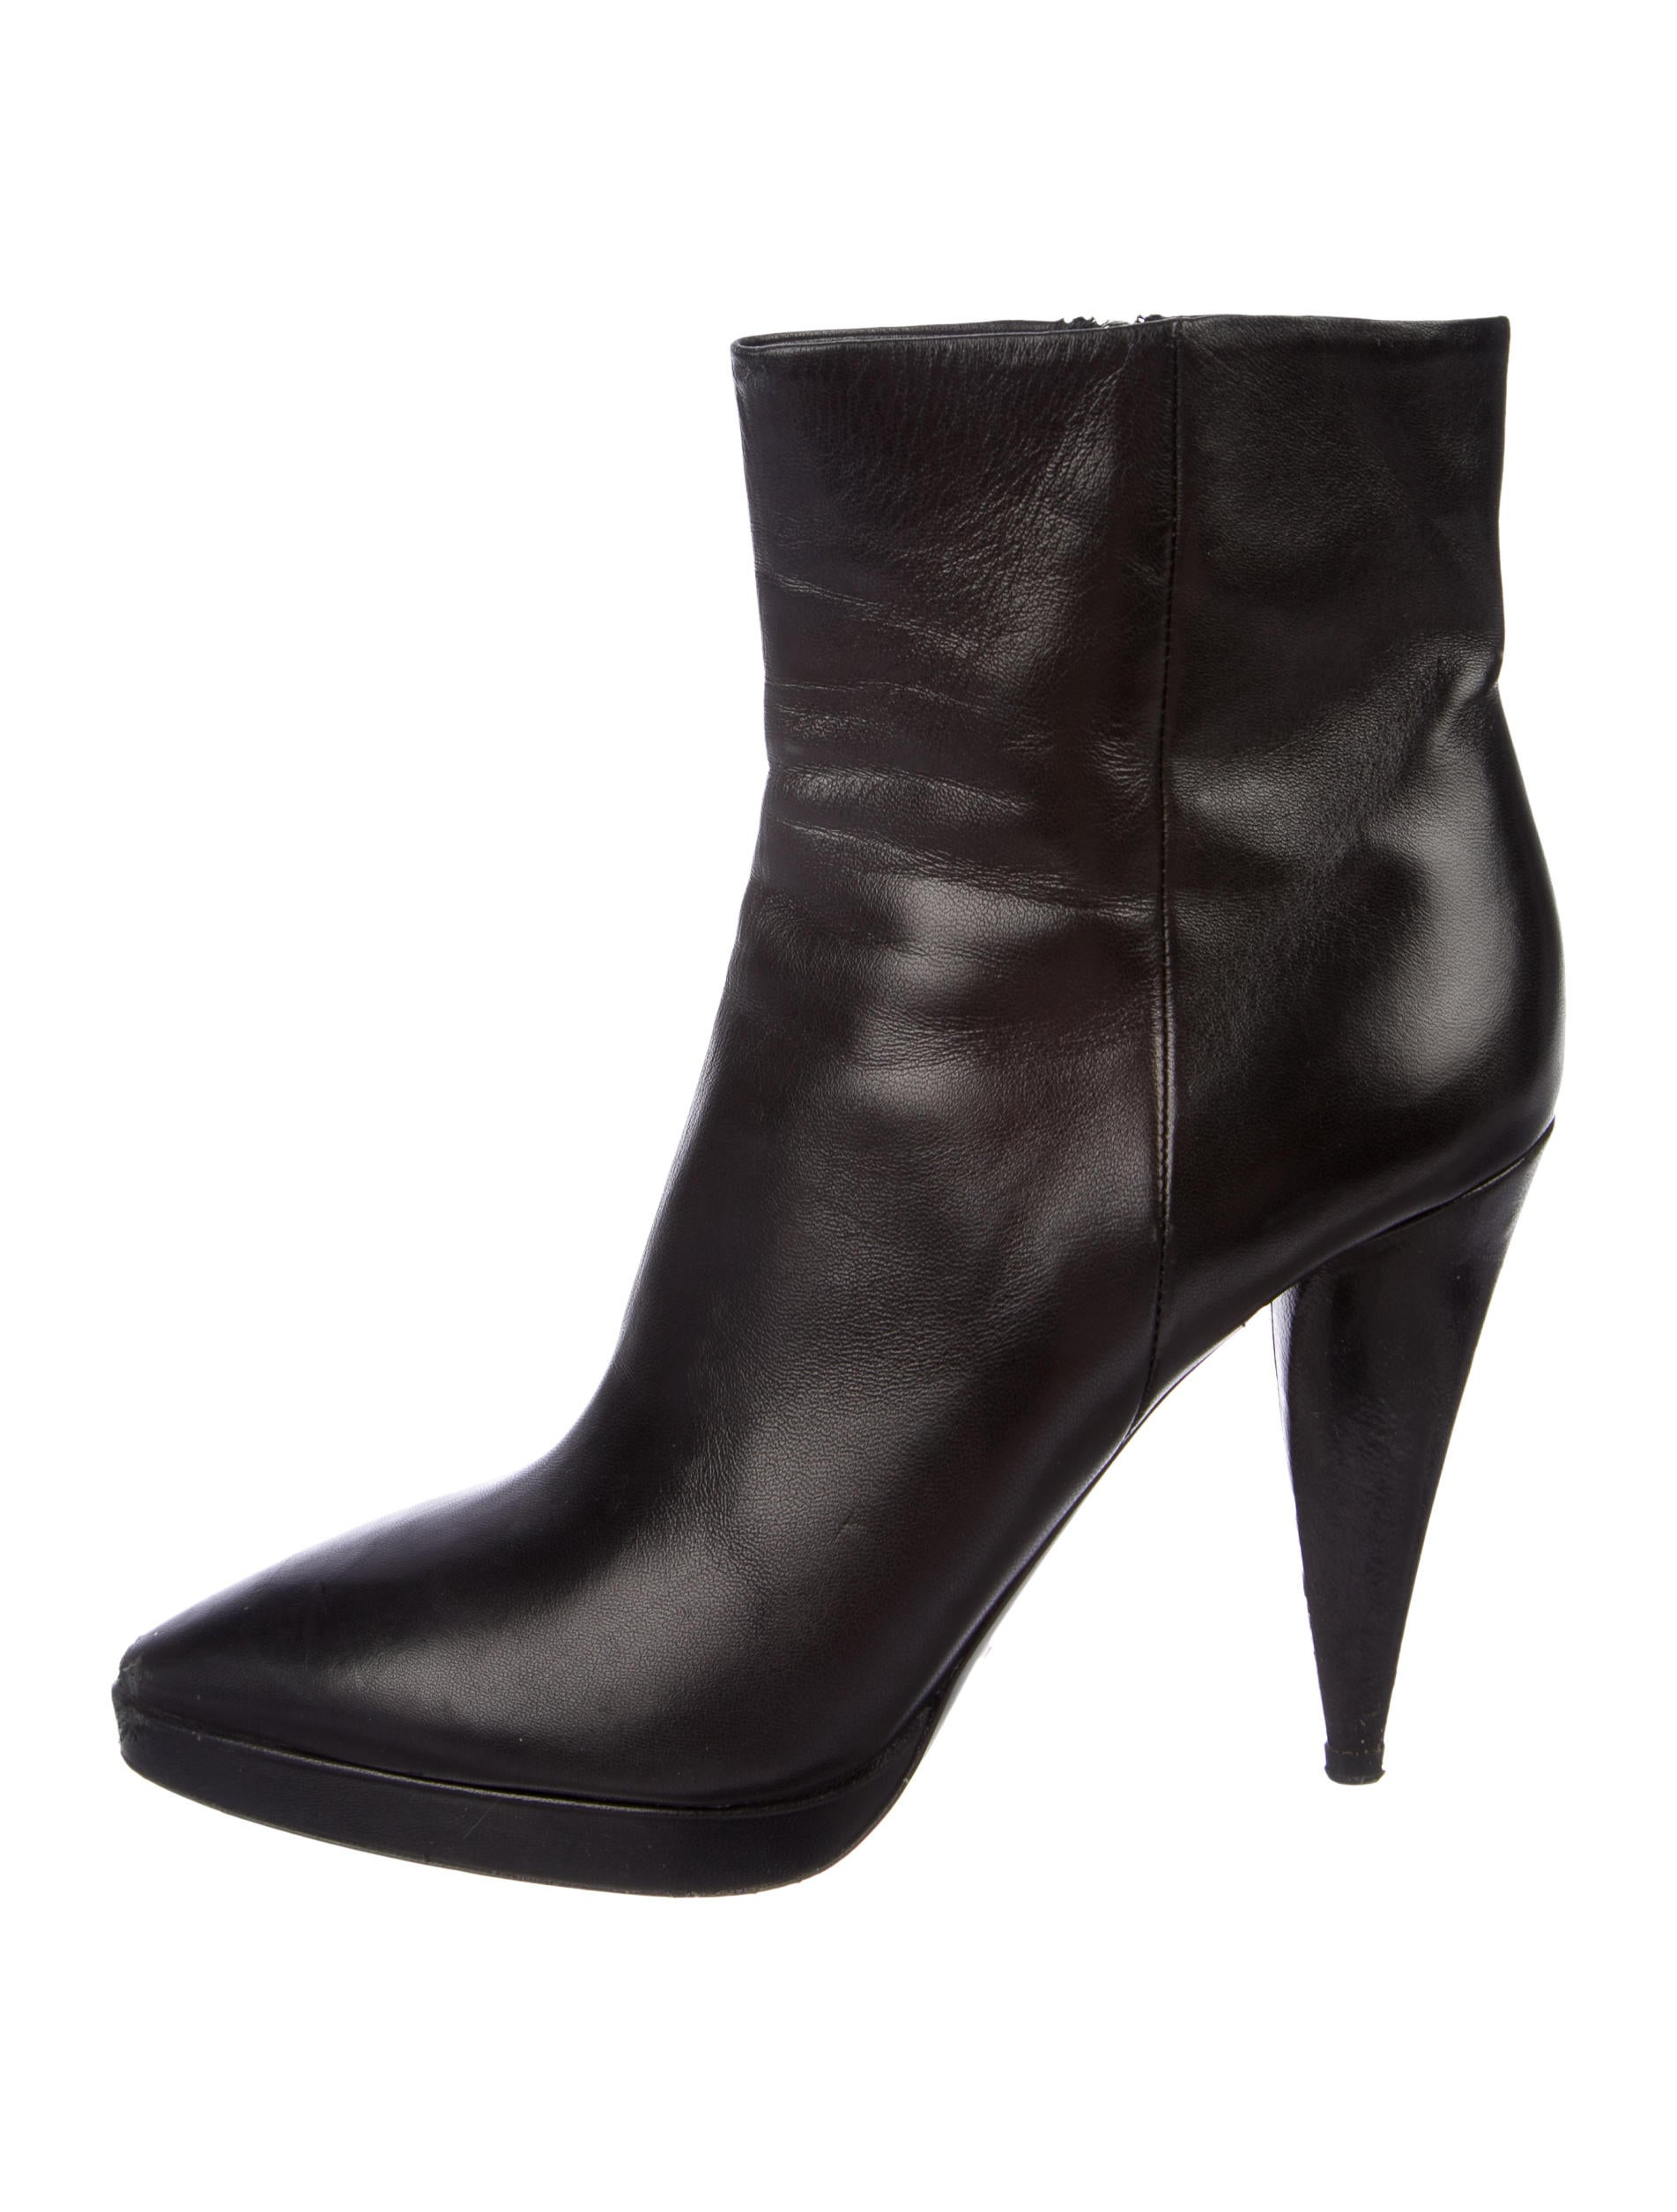 Prada Leather Pointed-Toe Ankle Boots good selling cheap price outlet with paypal order online cheap sale 100% original discount high quality in China cheap price FaPLARoZ